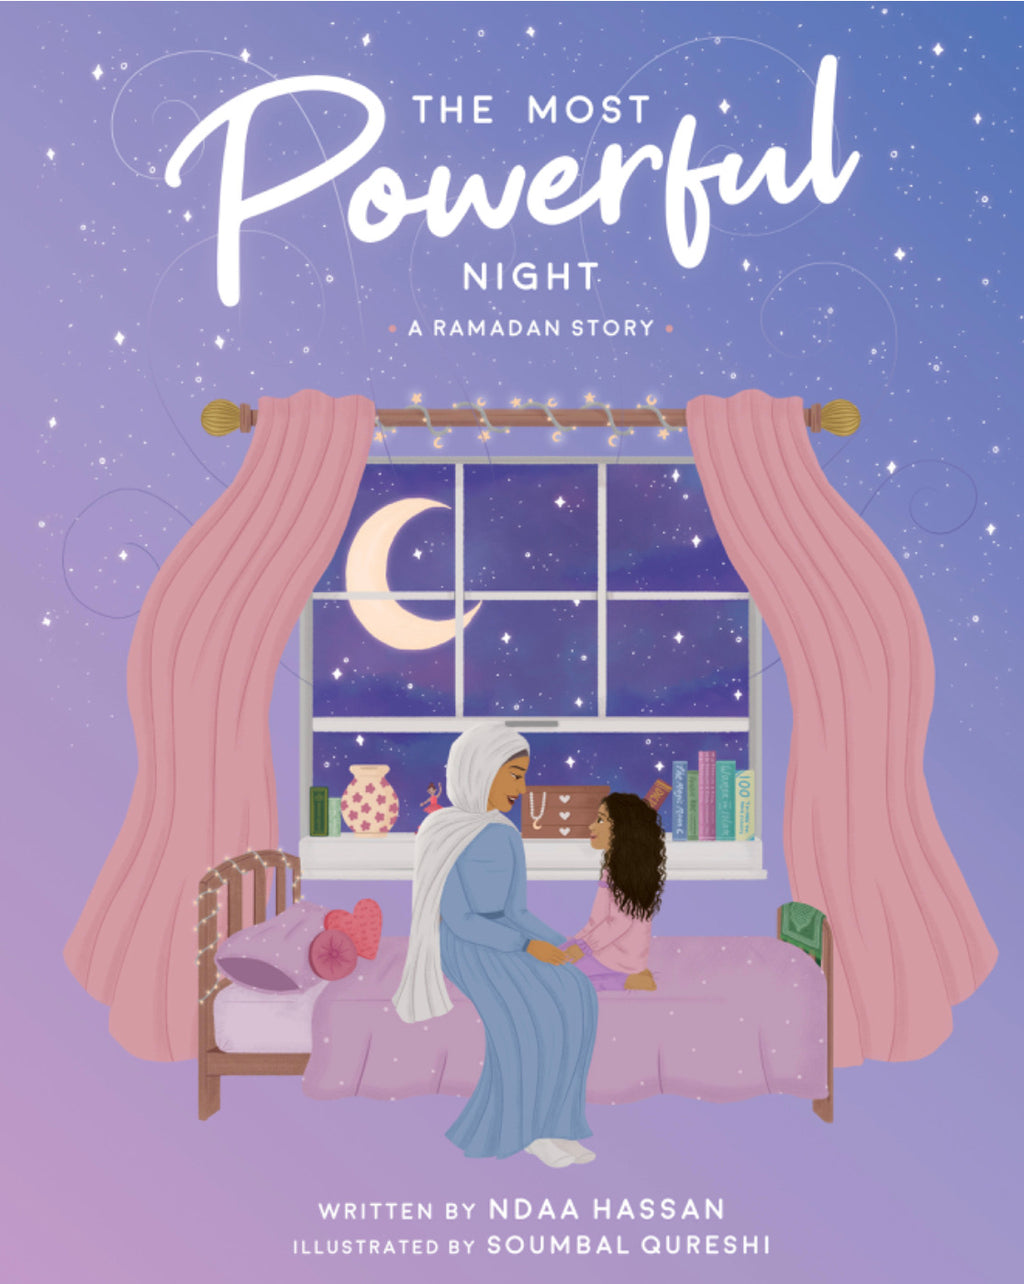 The Most Powerful Night | A Ramadan Story-Islamic Books-Crescent Moon Store-Crescent Moon Store